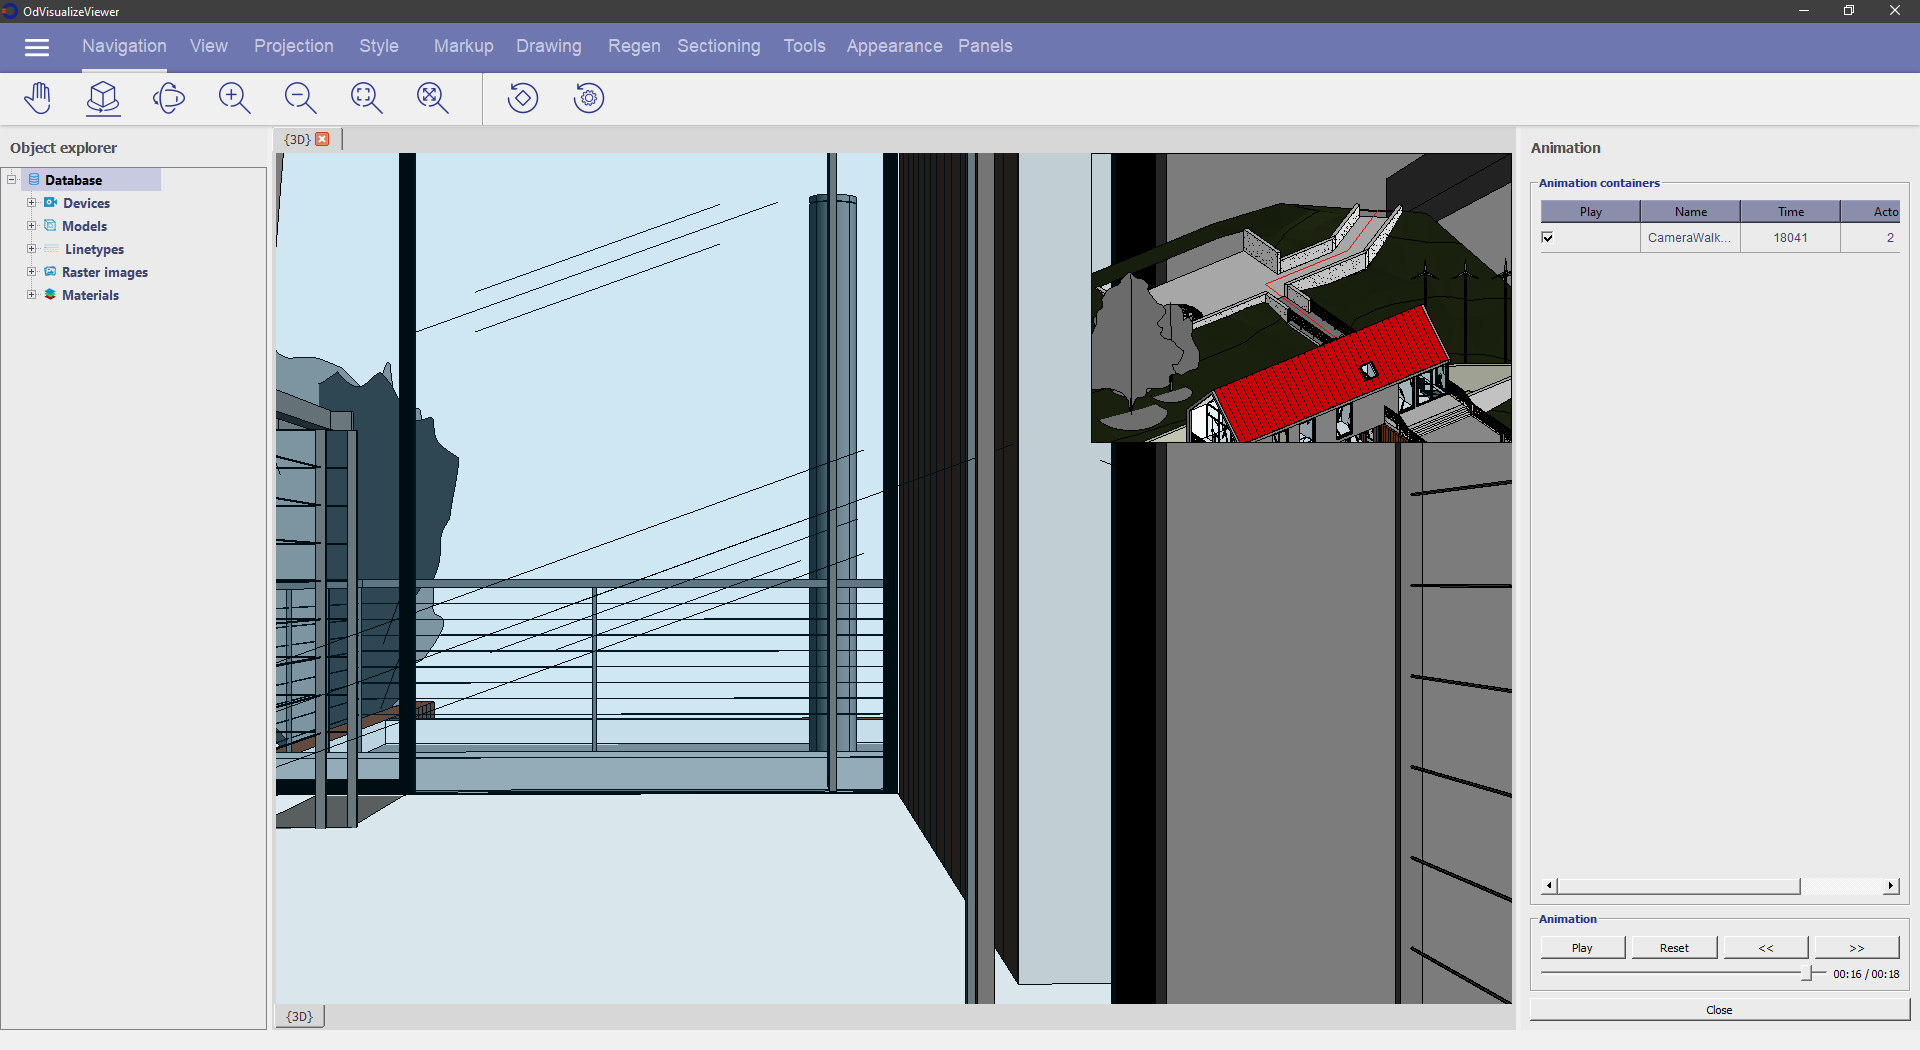 Screen capture of a building walk-through generated by ODA Visualize SDK